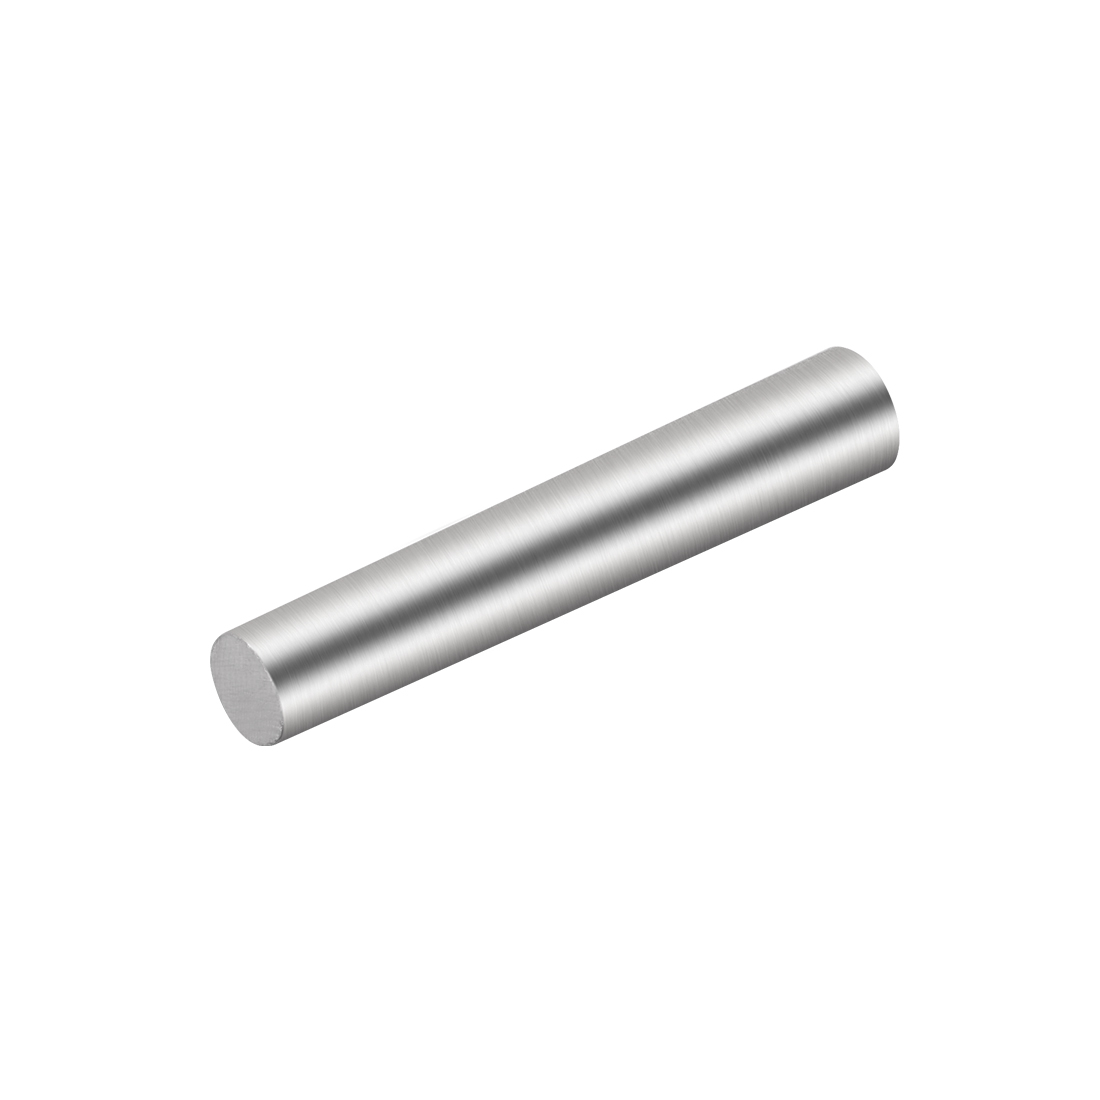 4mm x 35mm 1:50 Taper Pin 304 Stainless Steel Shelf Support Pin Fasten Elements